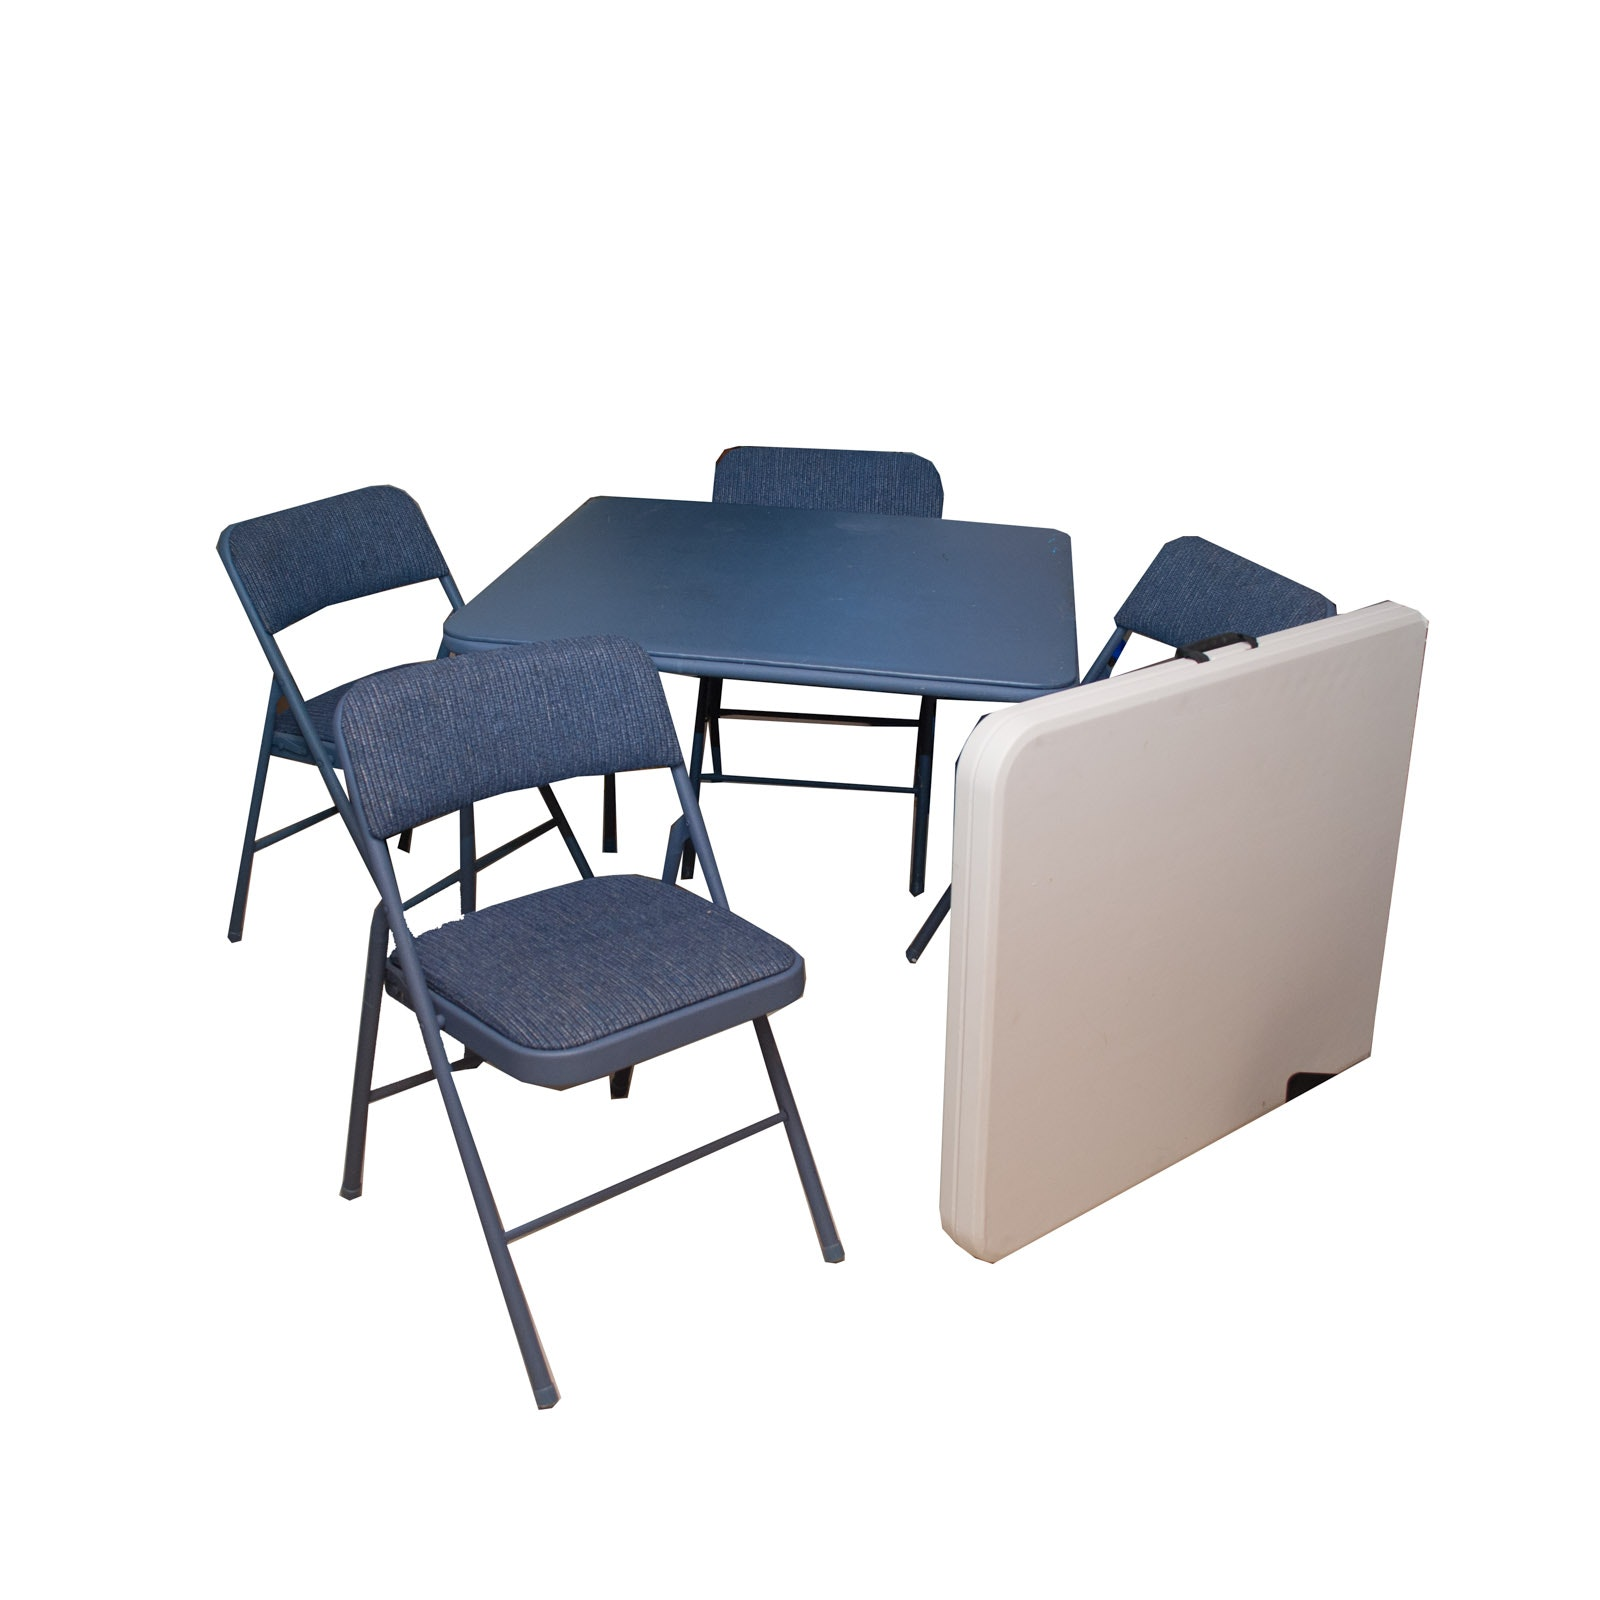 Folding Tables and Chair Set